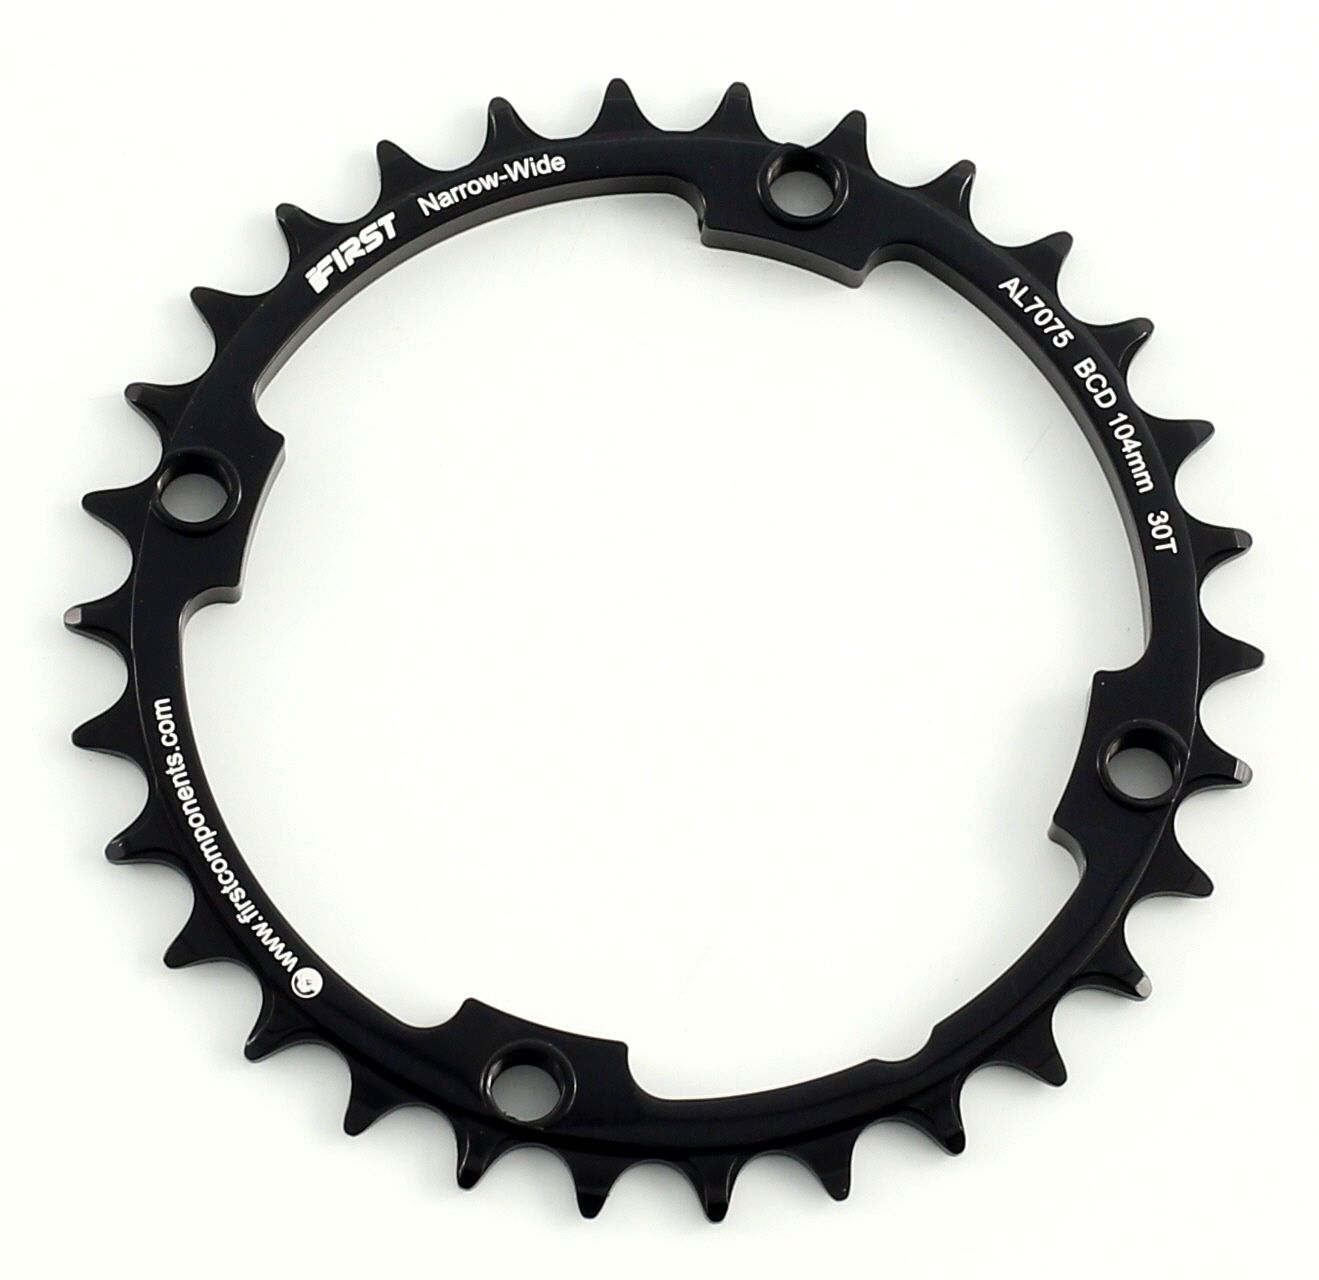 Couronne First Components Drop-Stop 30 dents narrow/wide 104 mm